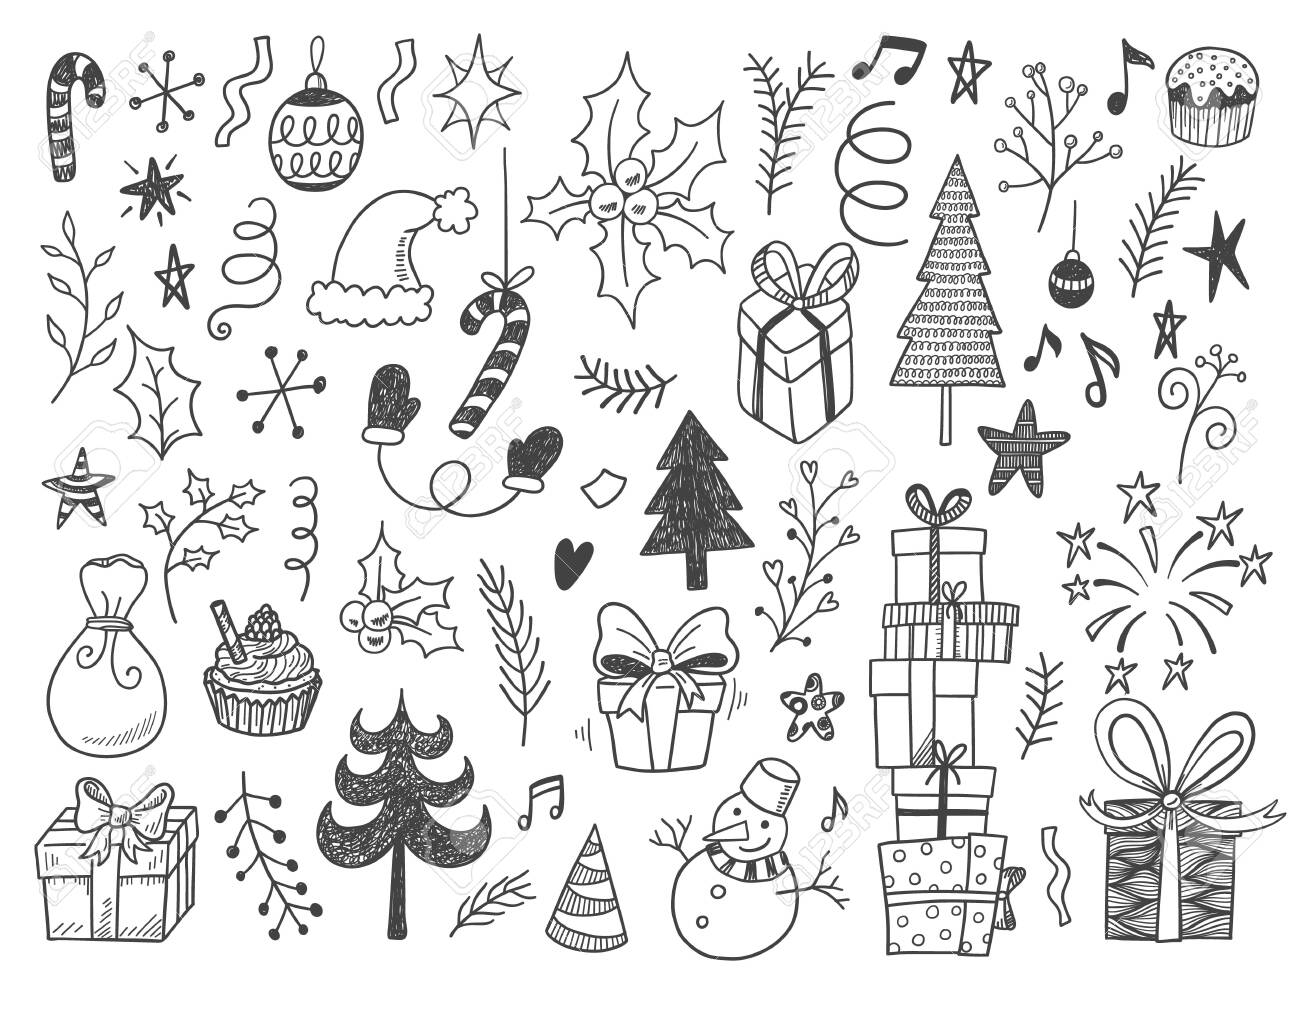 Hand drawn vector illustration set of New year and Christmas sign and symbol doodles elements. Pattern set with snowman, fir-trees, snowflakes, cakes, gift boxes. - 147000433